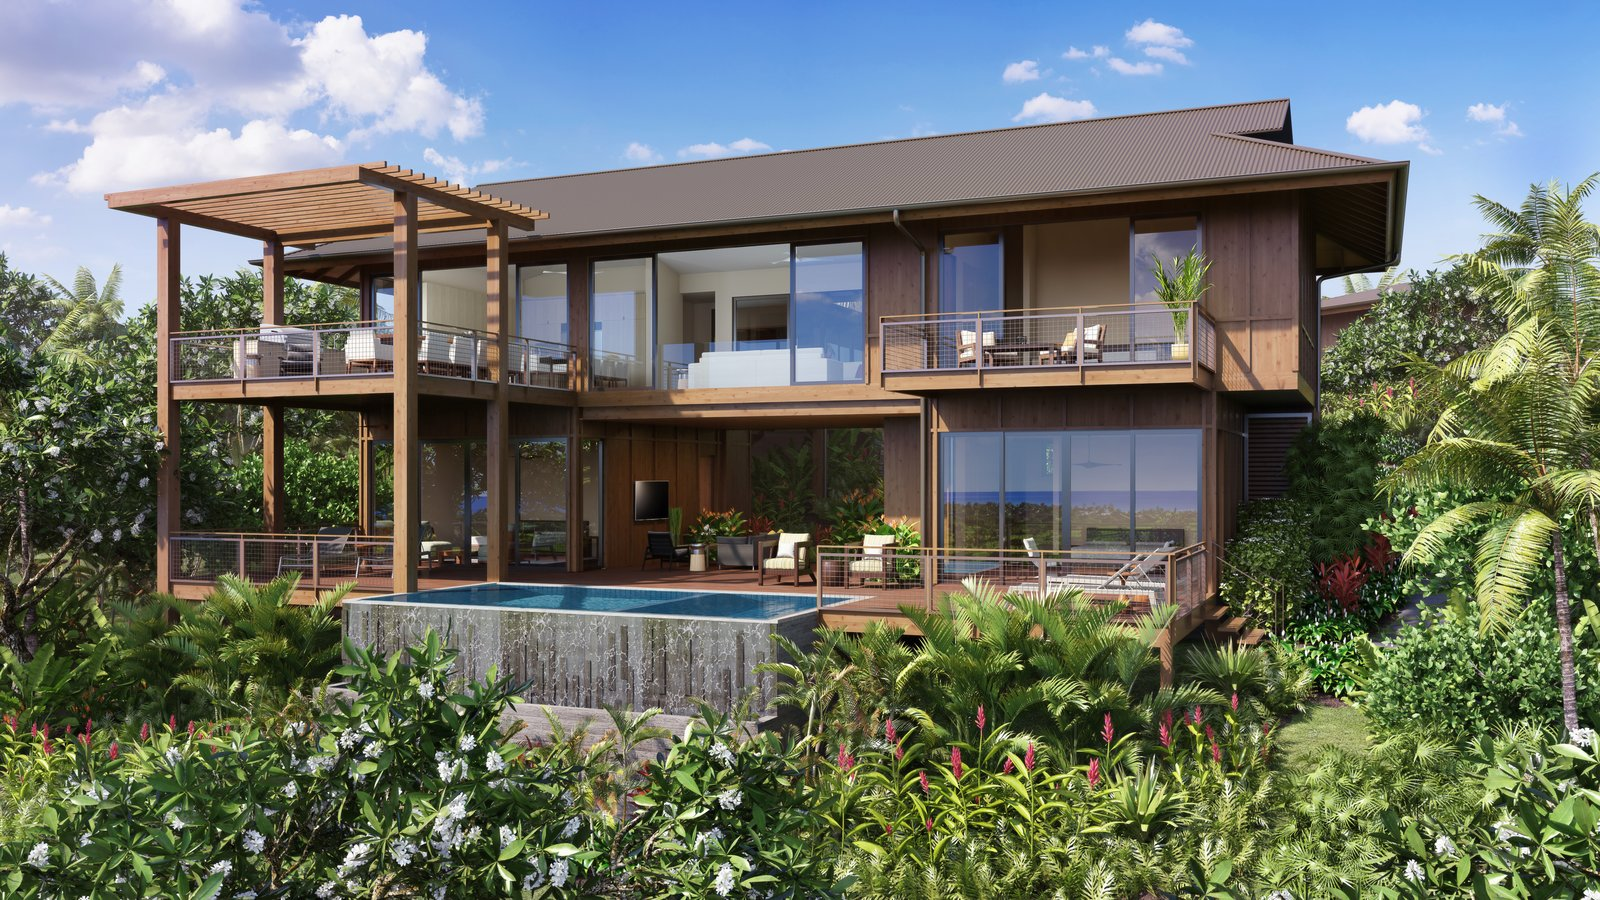 Outdoor, Infinity, Back Yard, Small, Trees, Gardens, Large, Walkways, and Flowers The gorgeous exterior view.  Best Outdoor Flowers Large Photos from A Breezy Hawaiian Residence by Olson Kundig Hits the Market at $6.95M